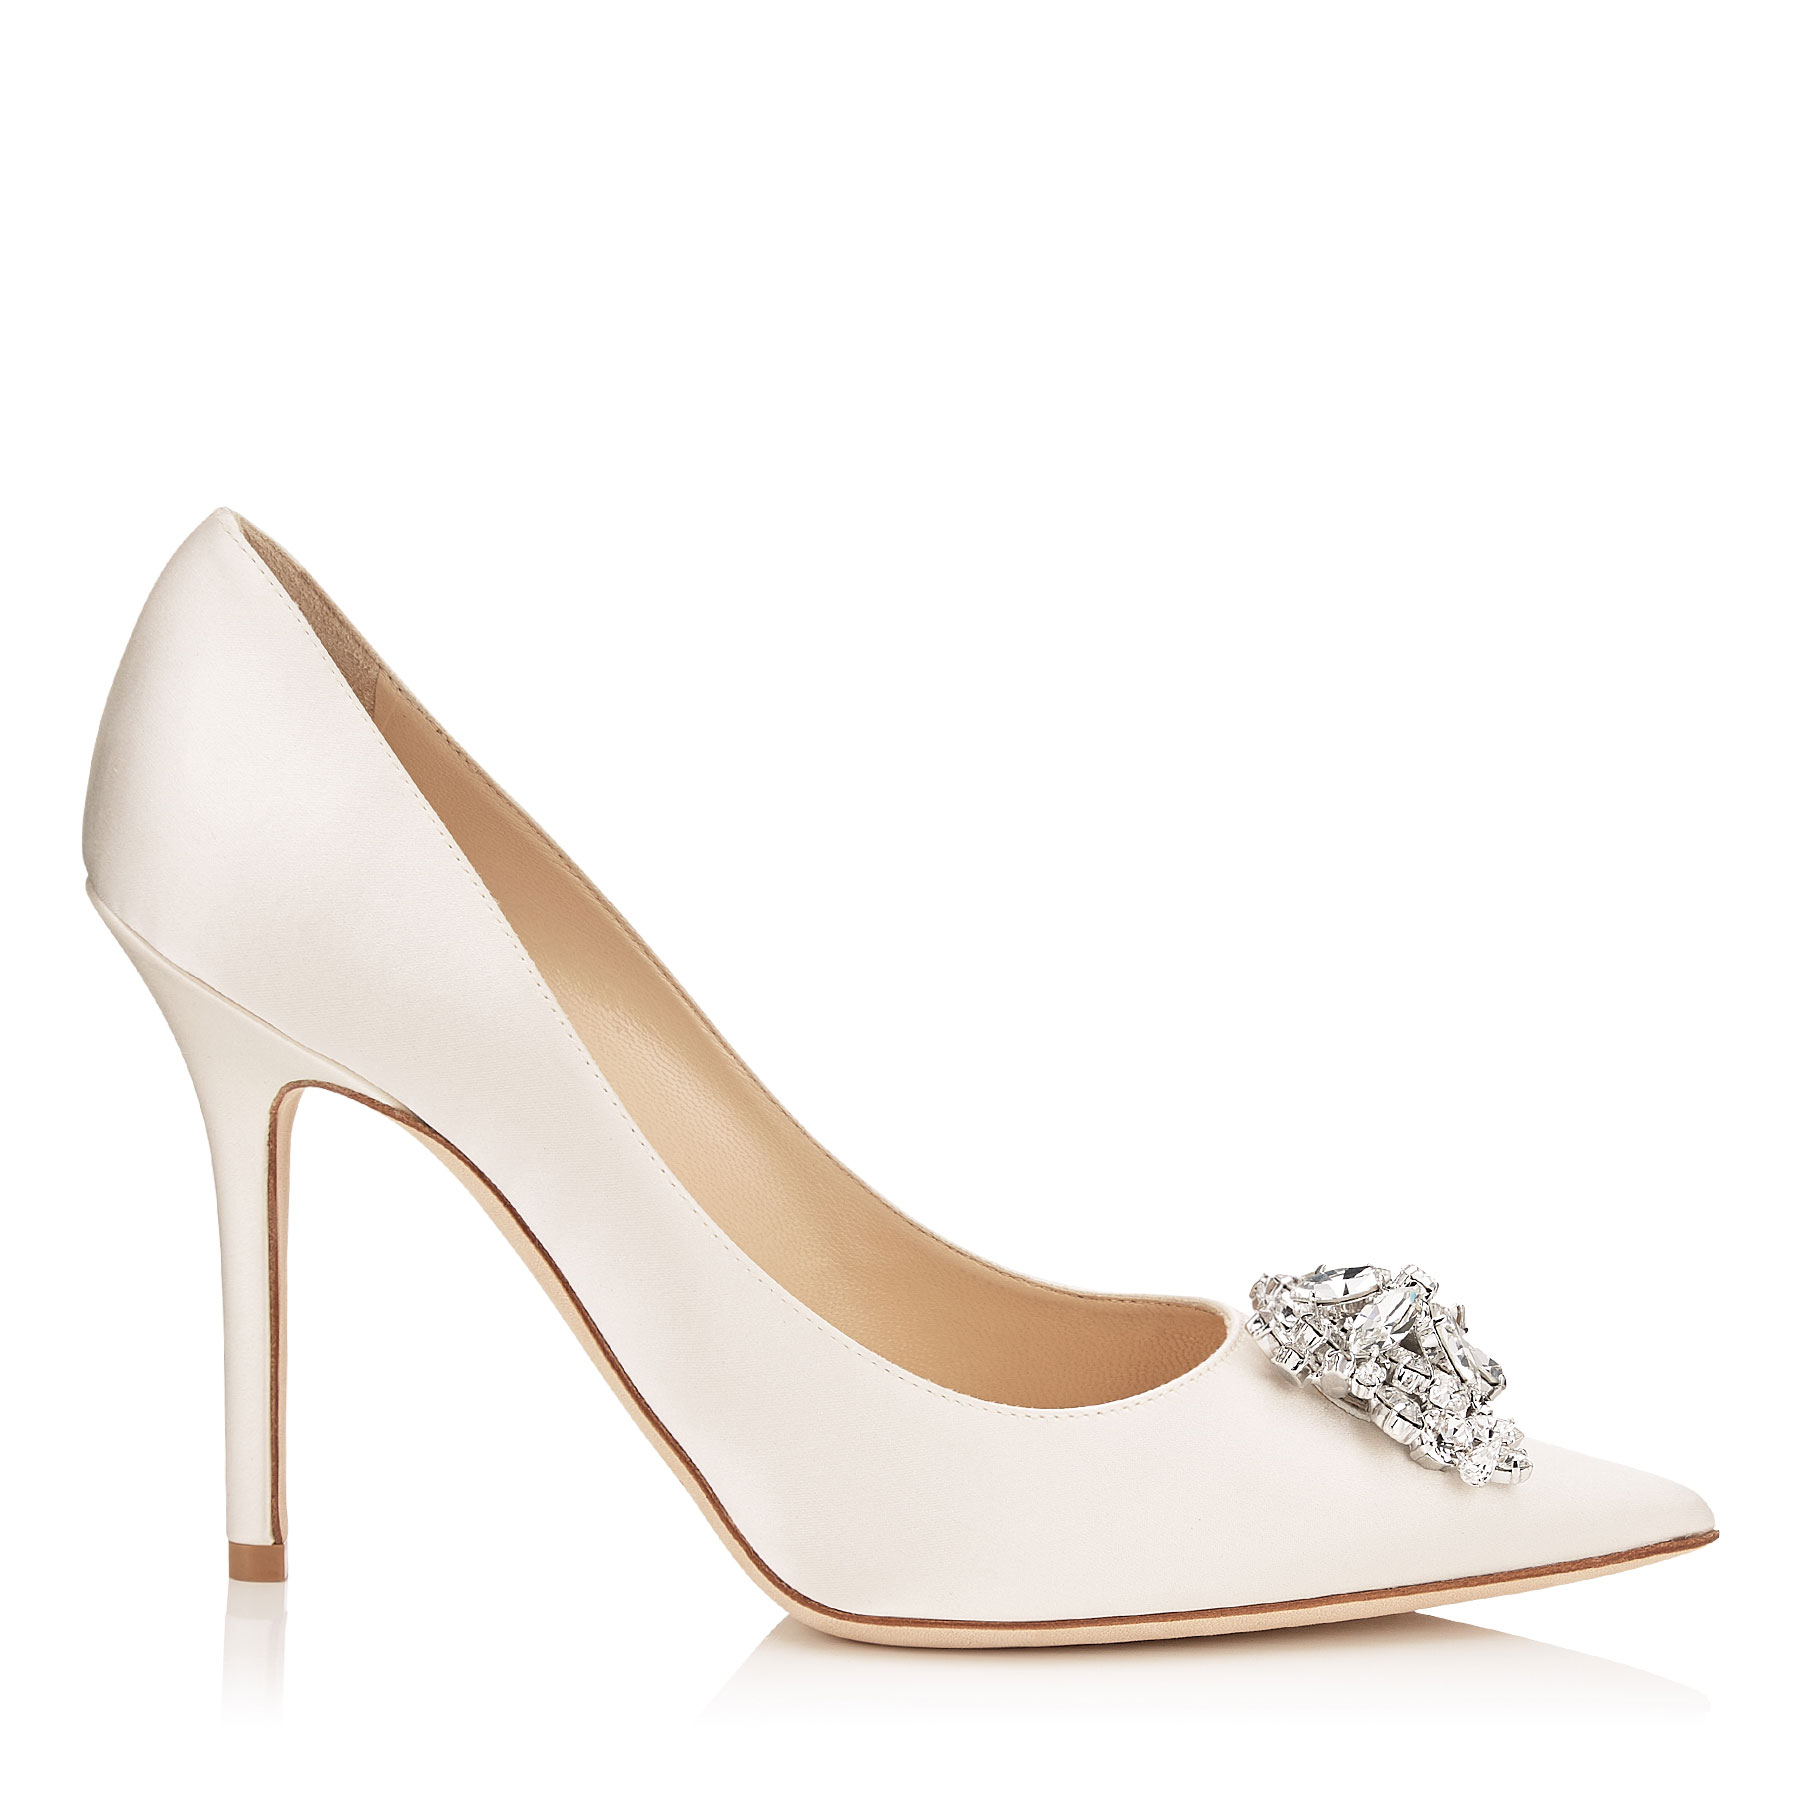 ABEL Ivory Satin Pointy Toe Pumps with Crystal Detail by Jimmy Choo